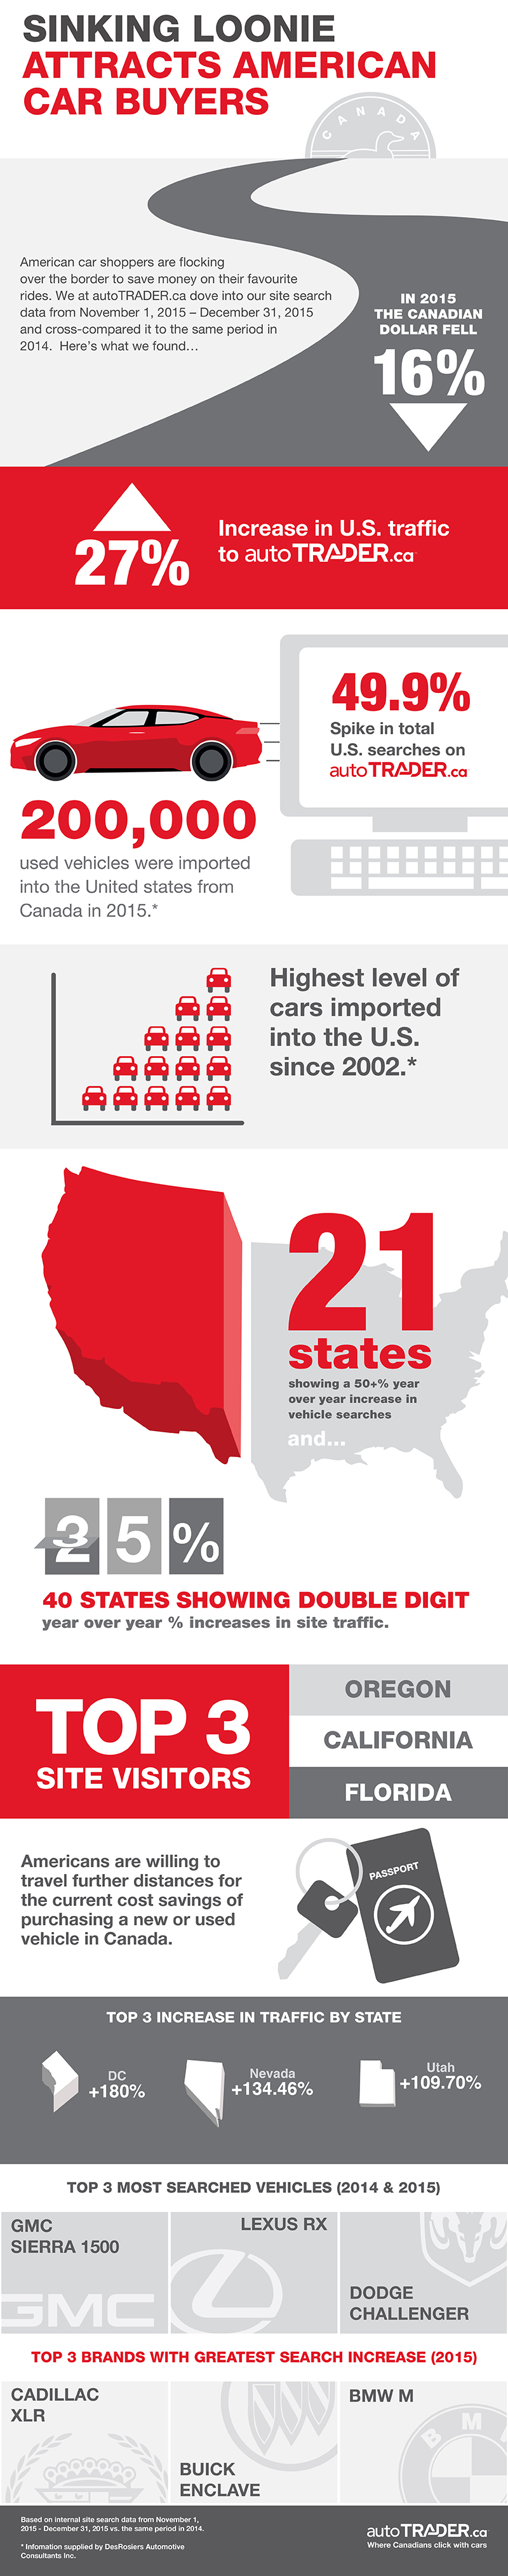 Recent US traffic analysis. Click for full image